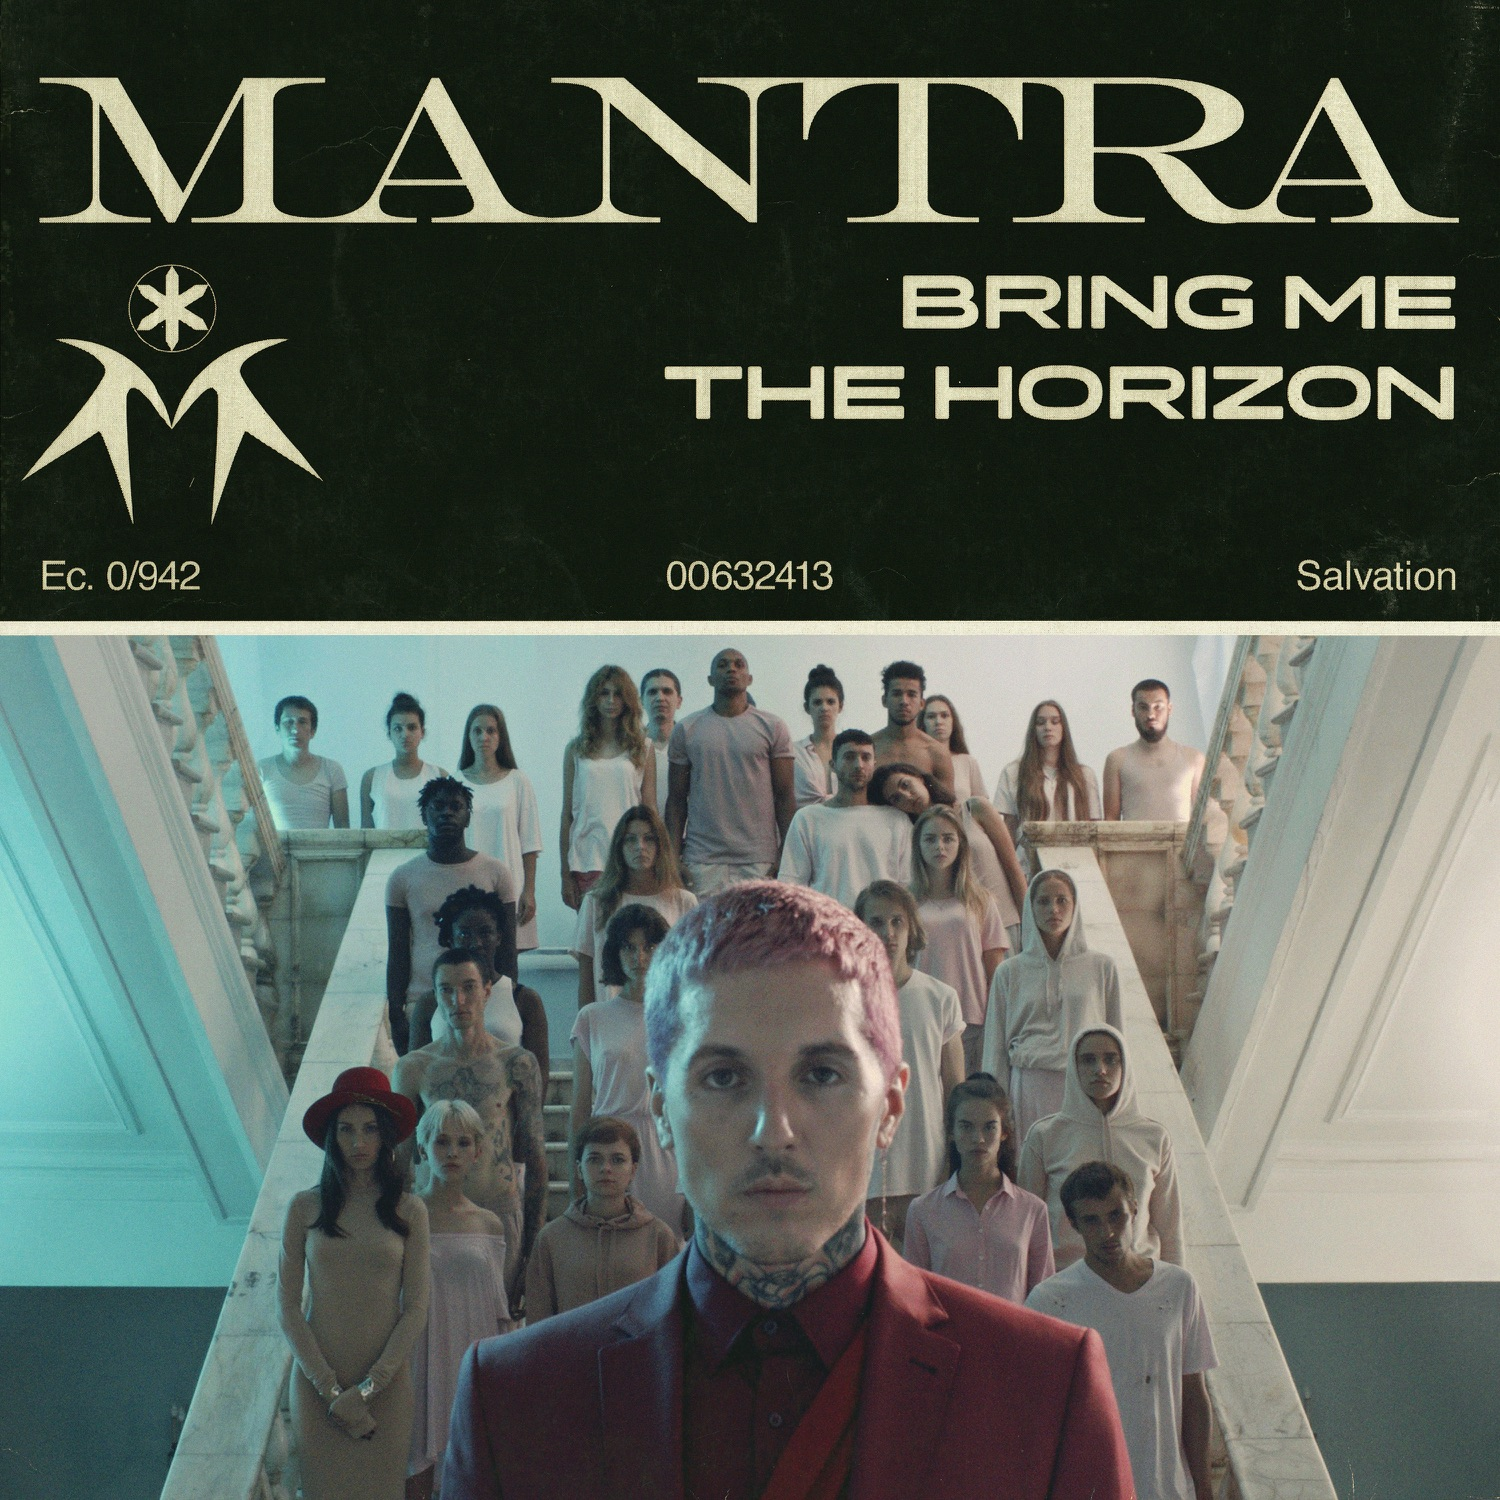 Bring Me the Horizon - MANTRA [single] (2018)